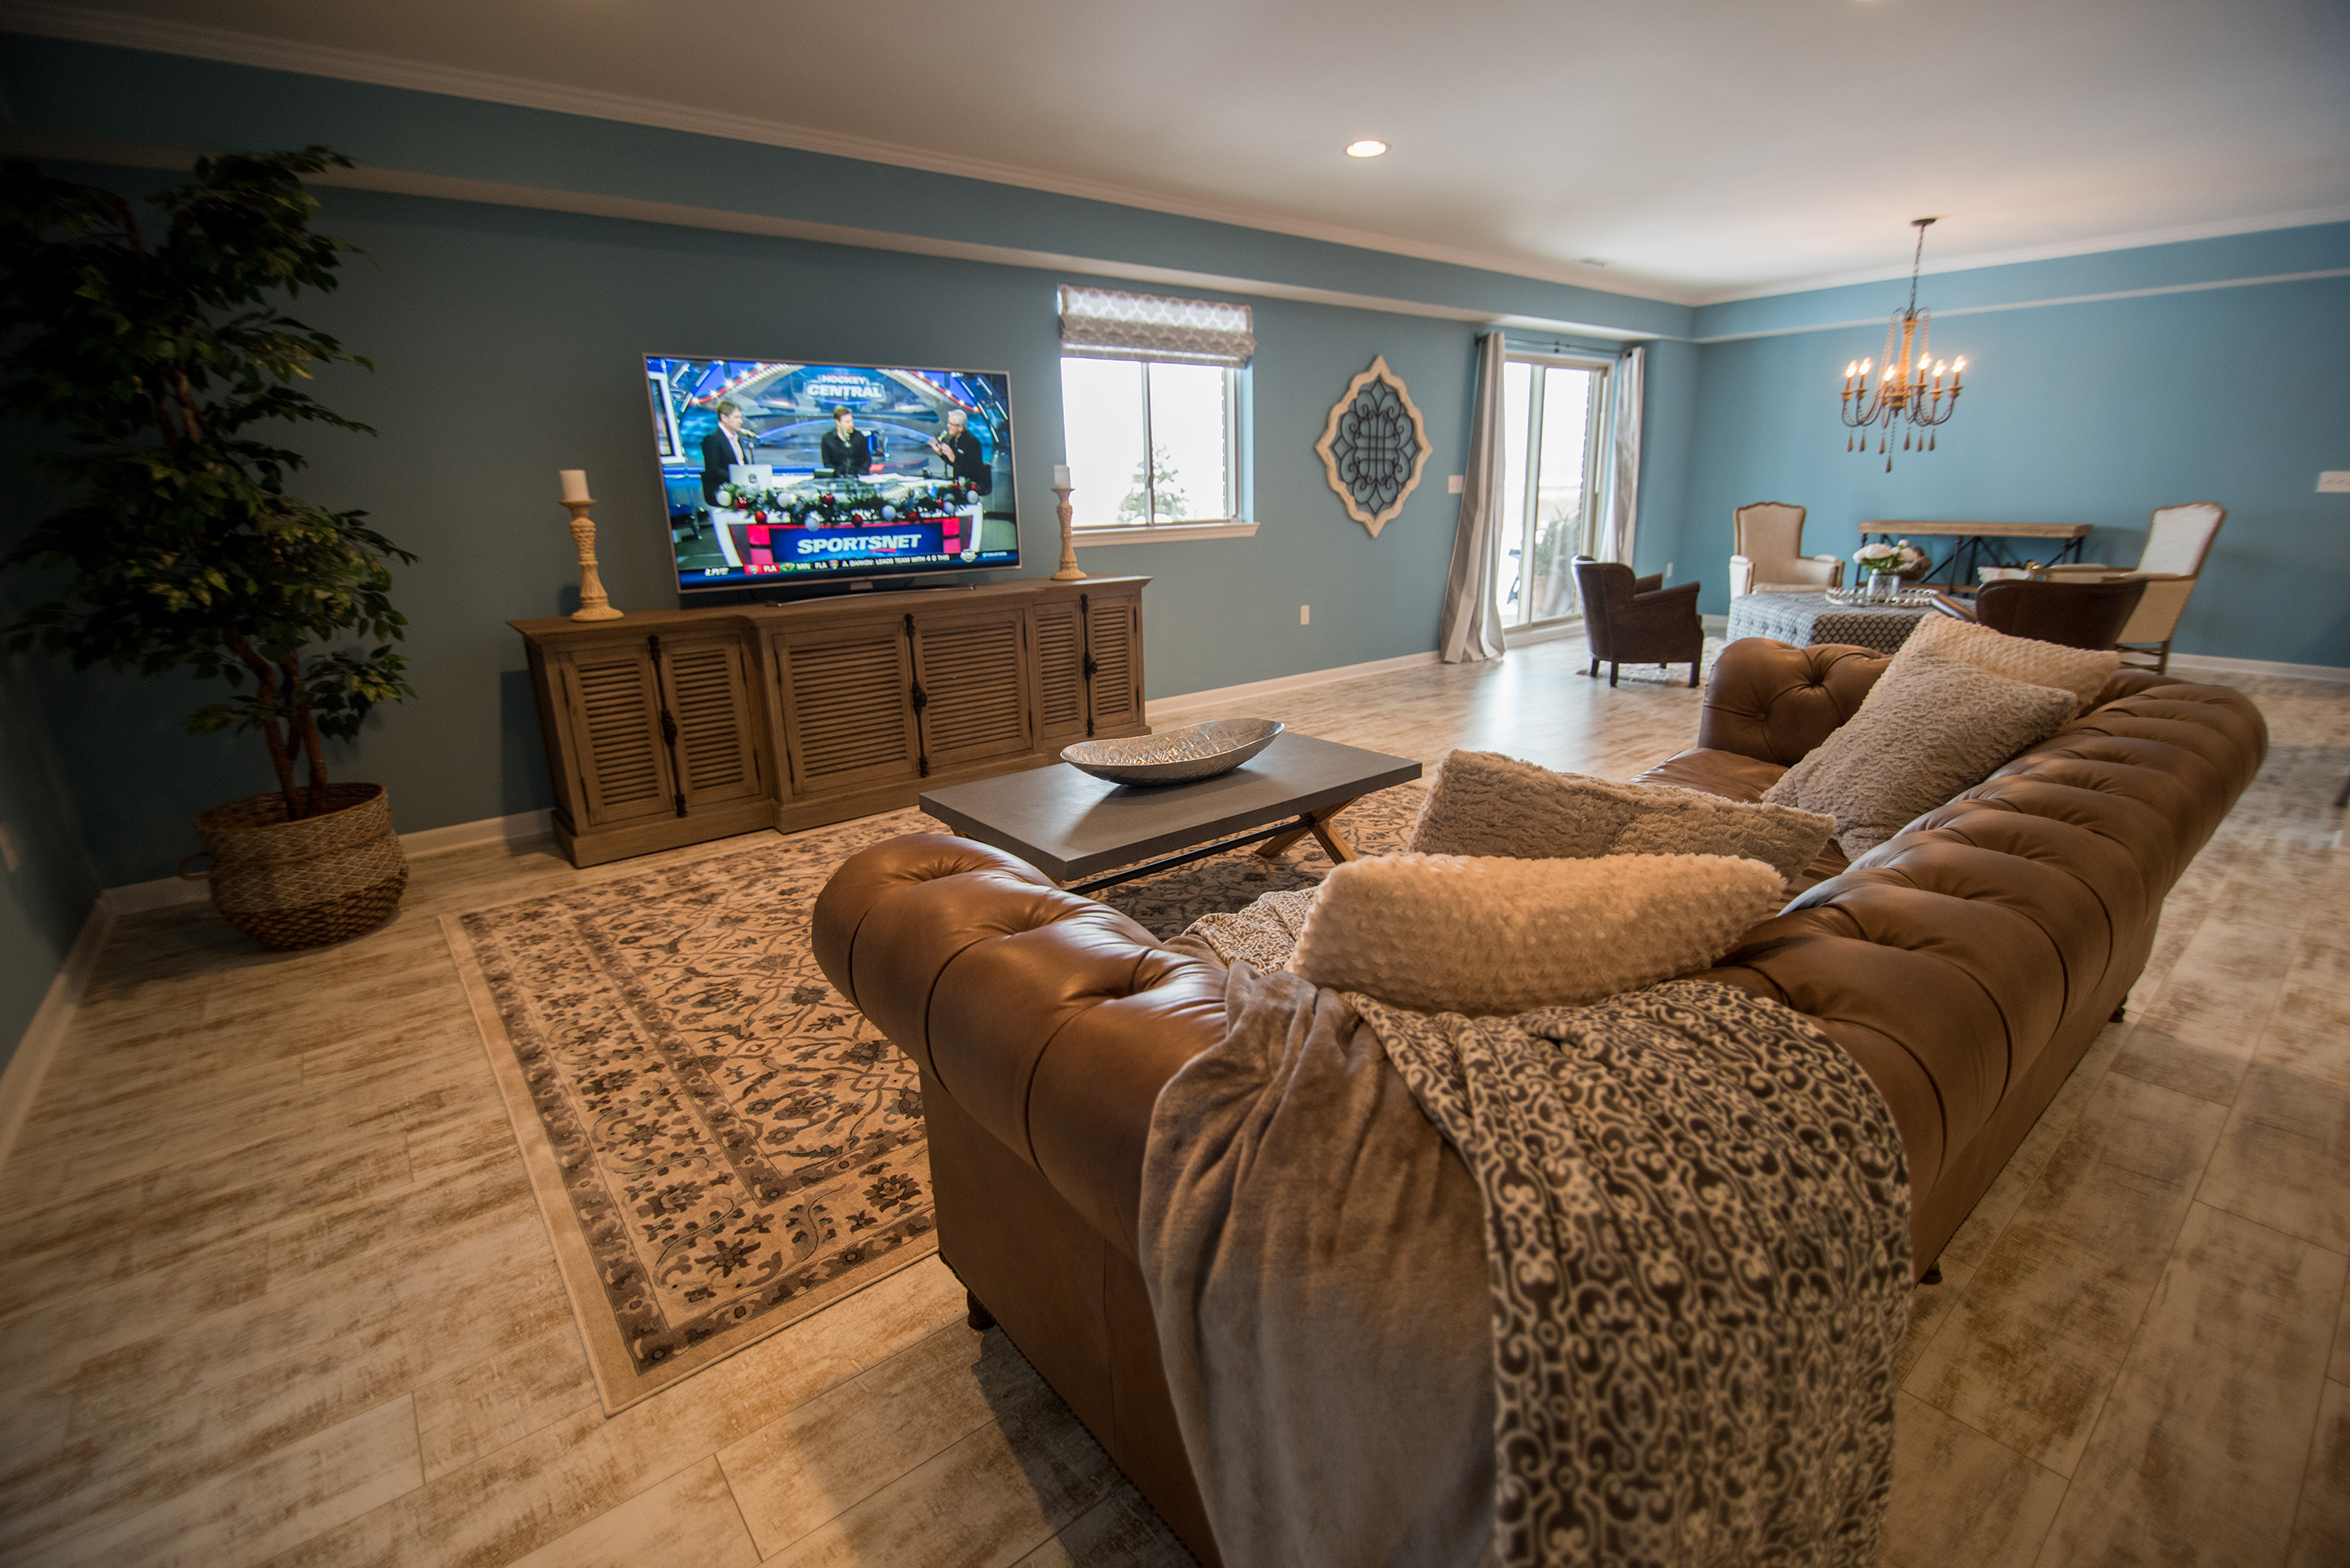 South Lyon Michigan open concept basement living room with rustic beach theme